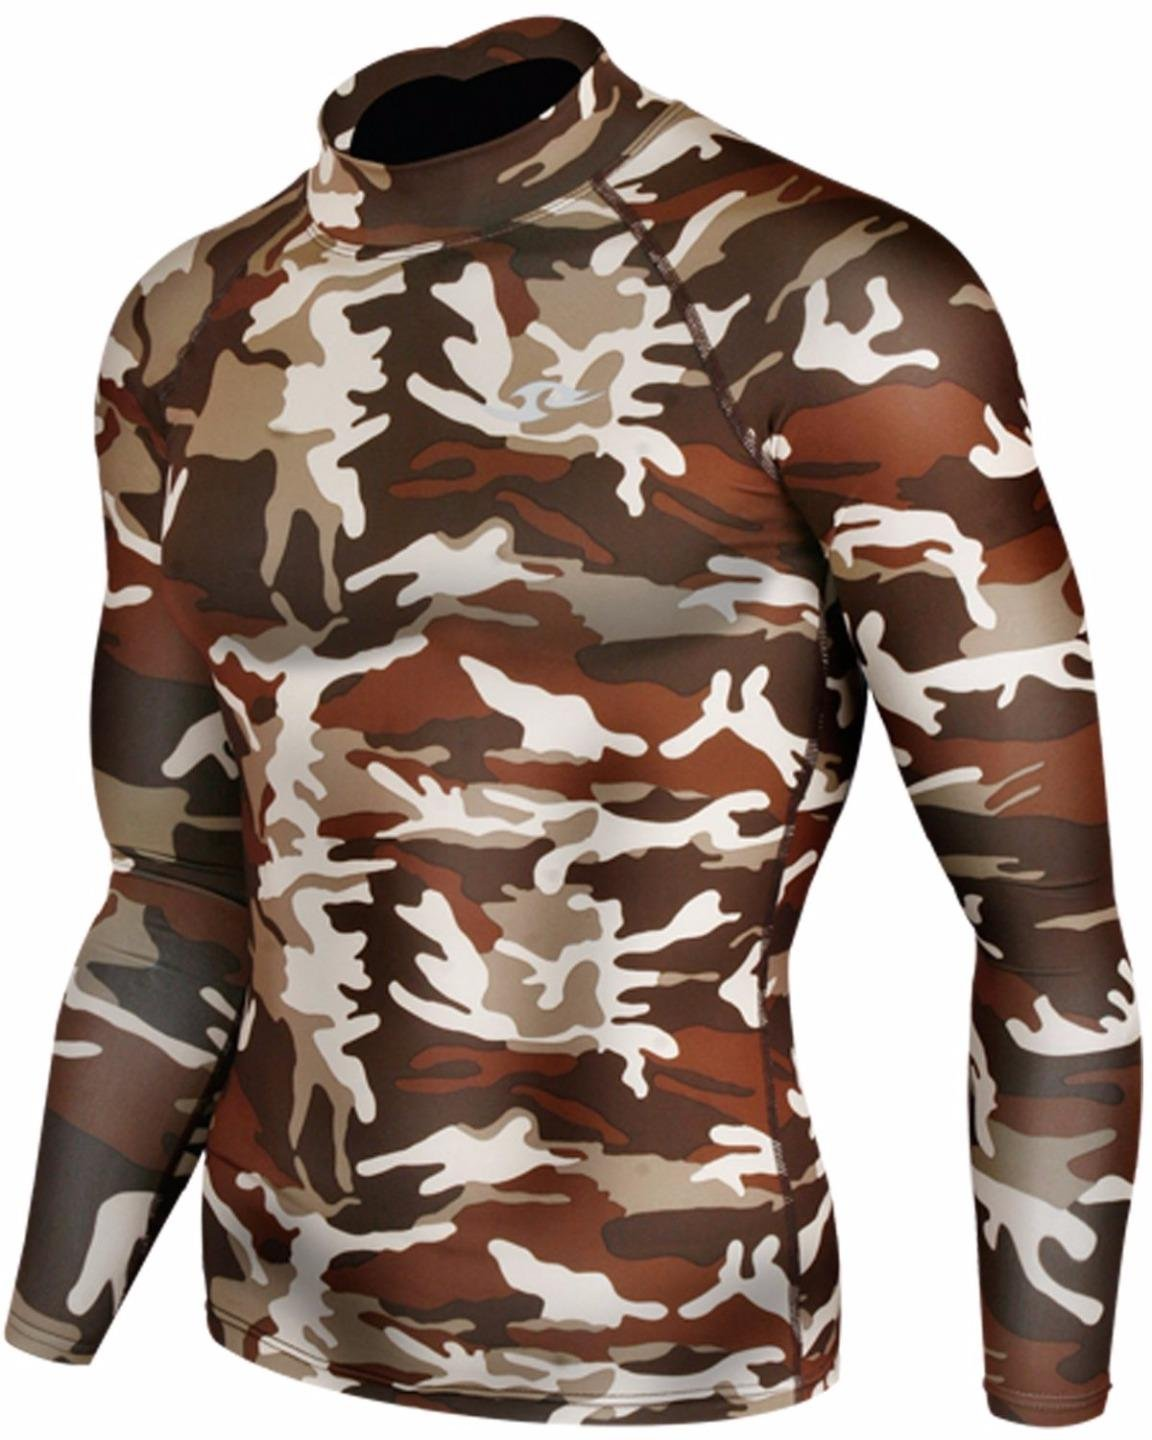 New 062 Skin Tight Compression Base Layer Camo Running Shirt Mens S - 2xl